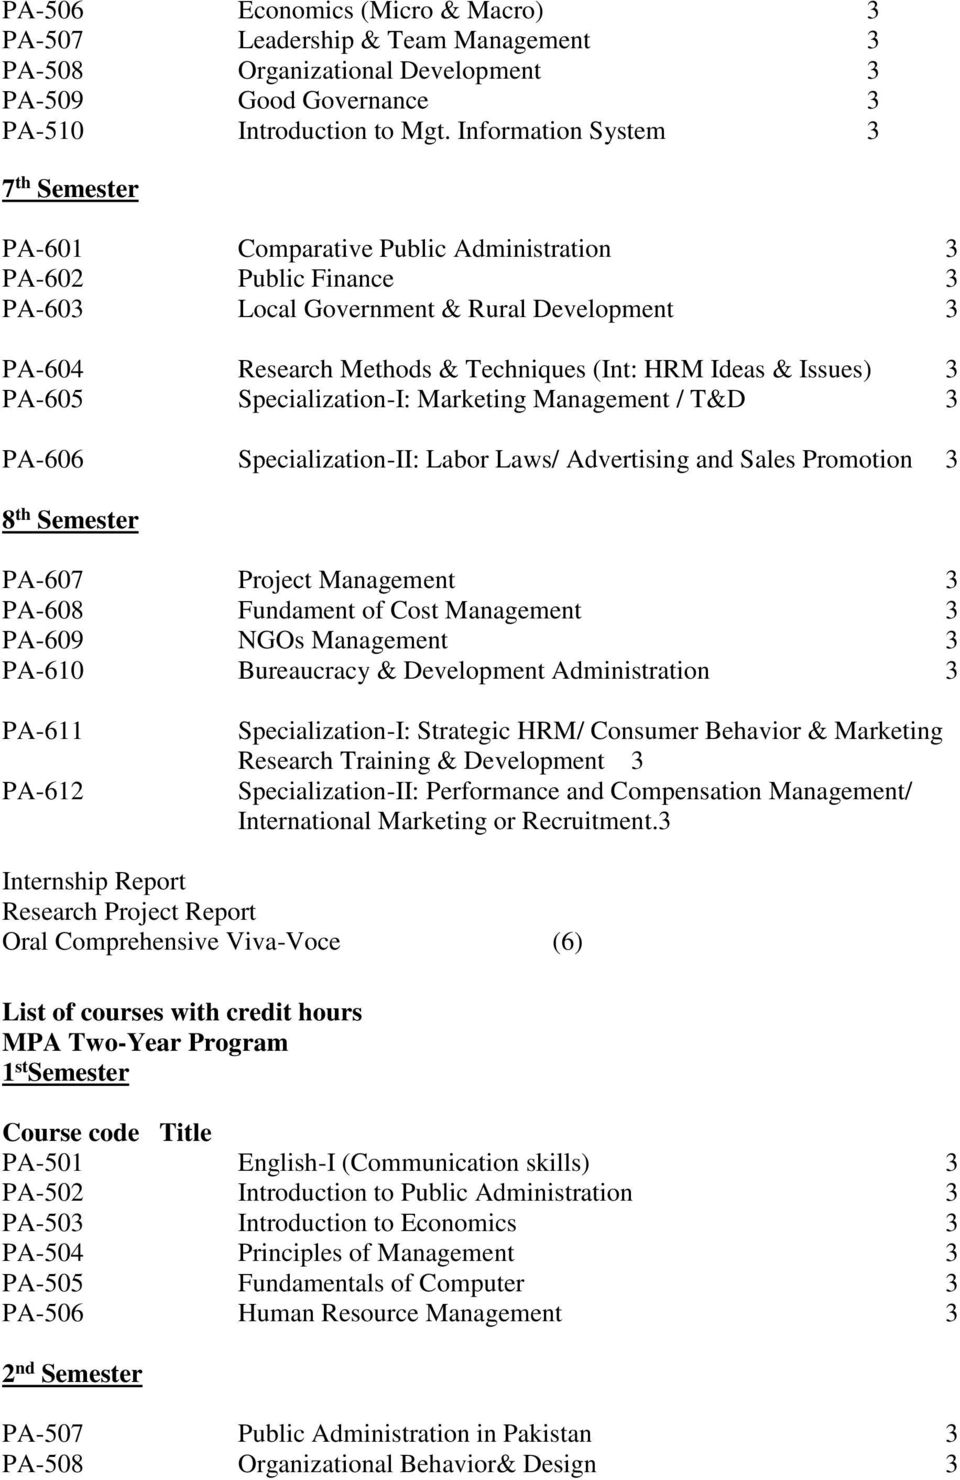 Ideas & Issues) 3 PA-605 Specialization-I: Marketing Management / T&D 3 PA-606 Specialization-II: Labor Laws/ Advertising and Sales Promotion 3 8 th Semester PA-607 Project Management 3 PA-608